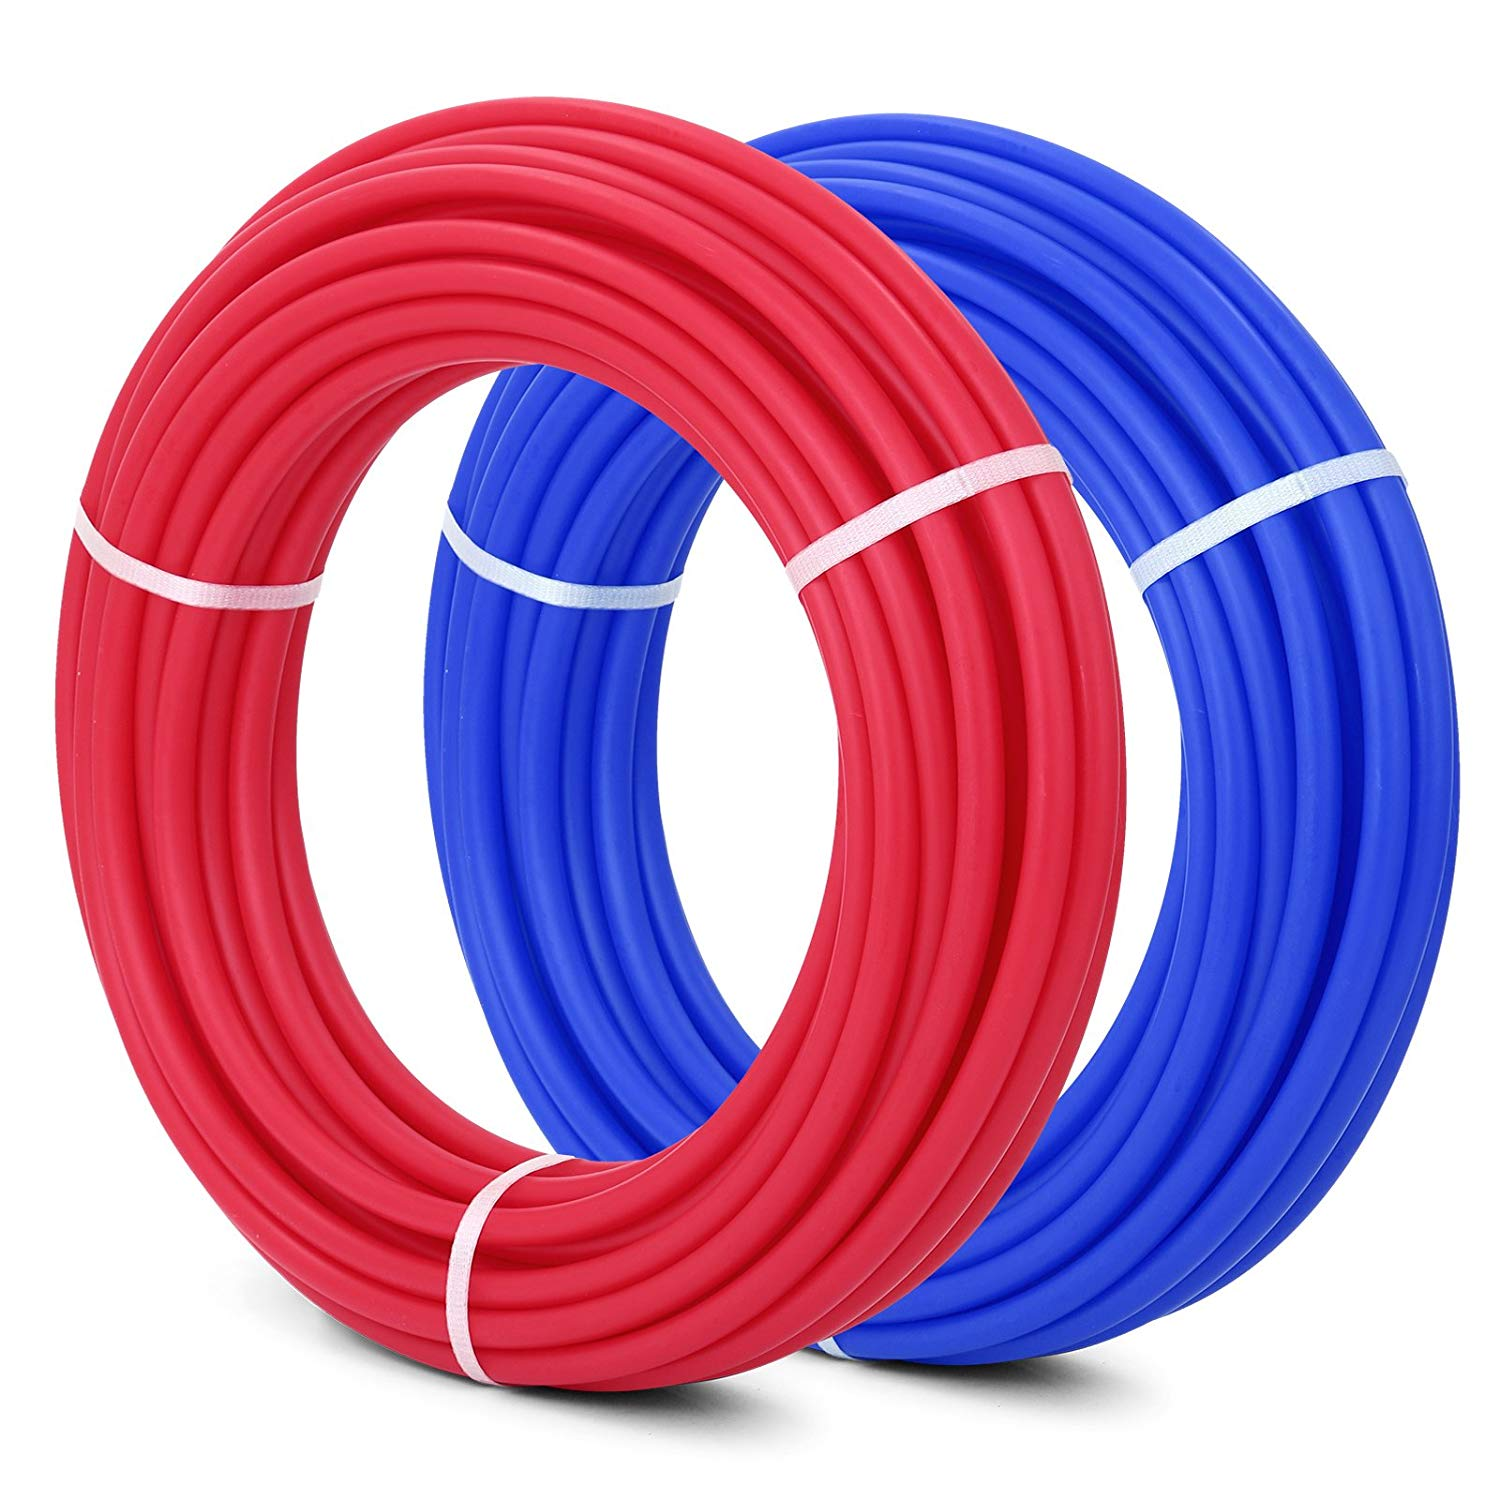 Radiant Floor Heat Materials Electrical Wiring Pipes Pex